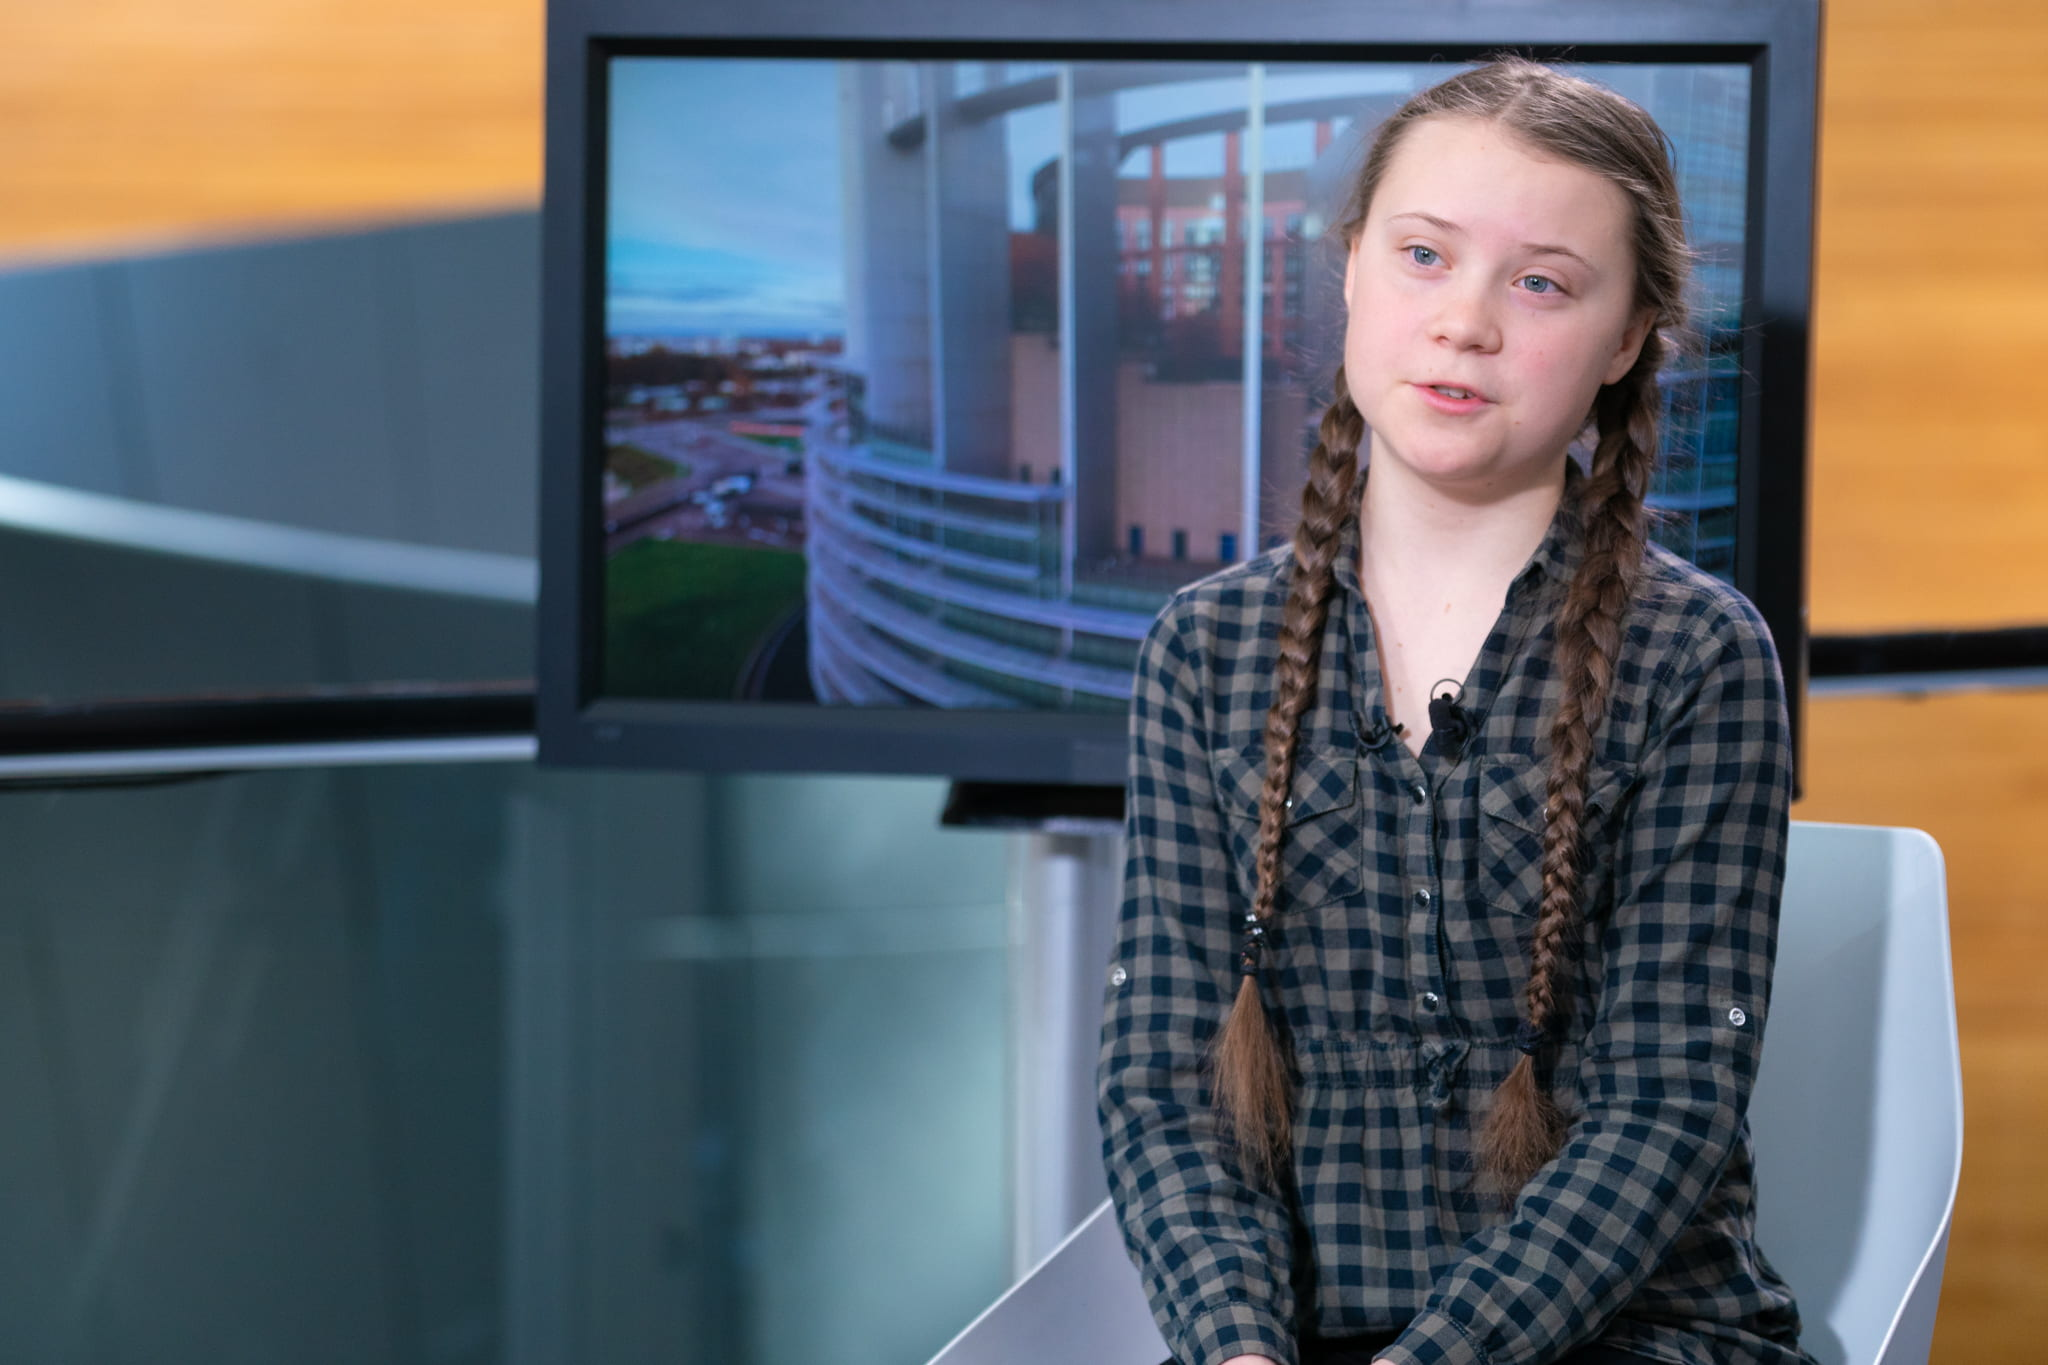 Greta Thunberg sitting in a chair and being interviewed.